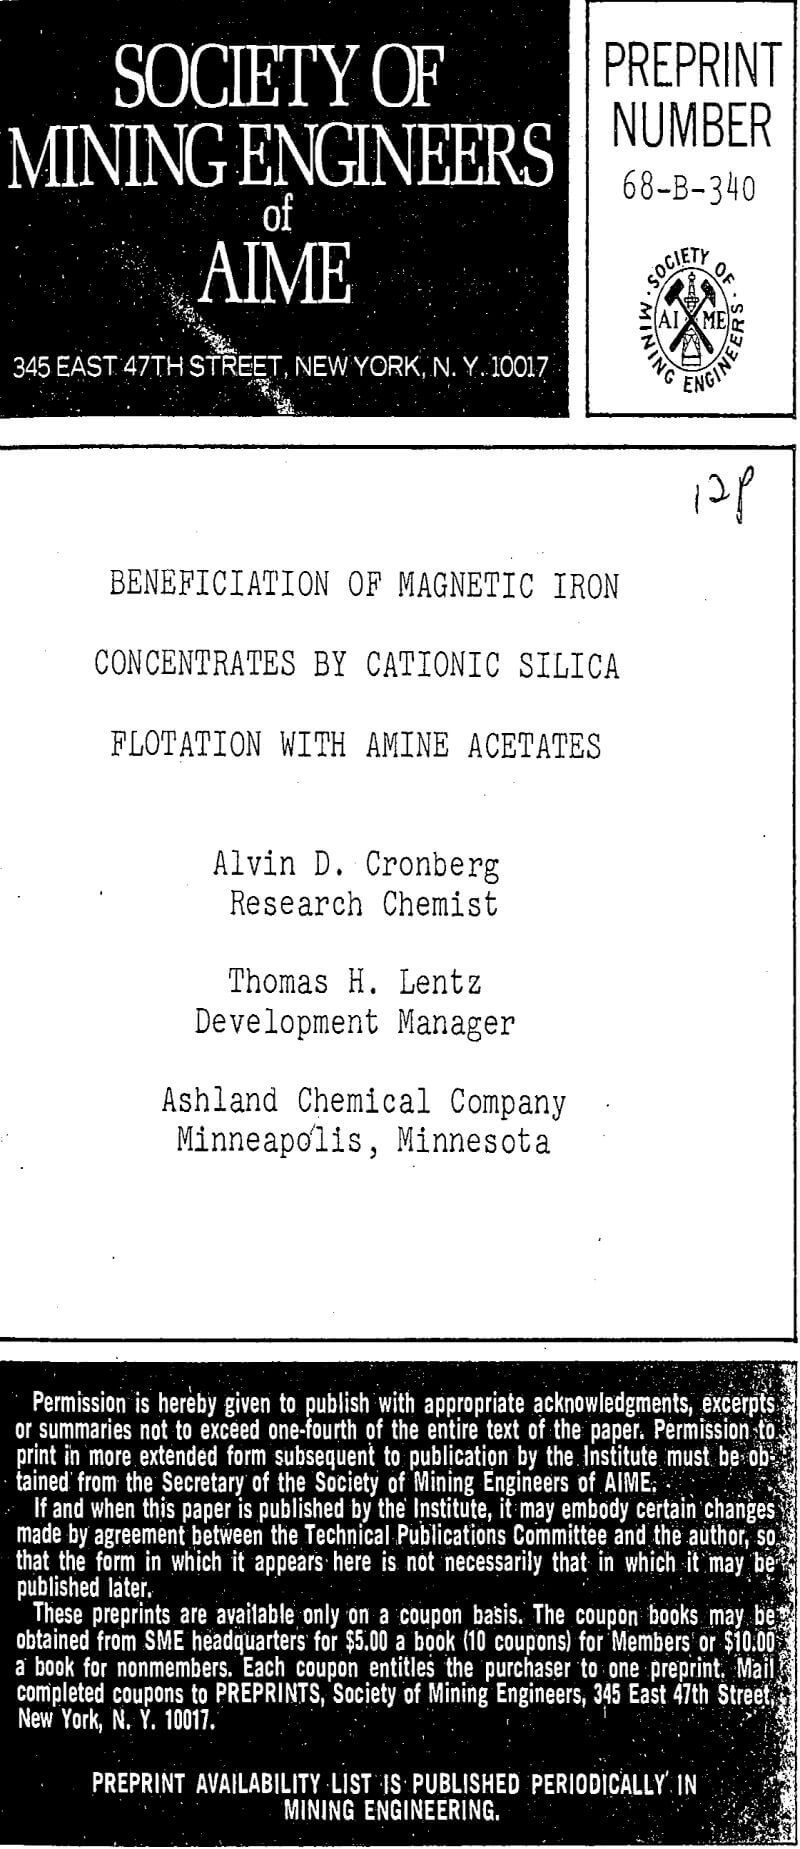 beneficiation of magnetic iron concentrates by cationic silica flotation with amine acetates